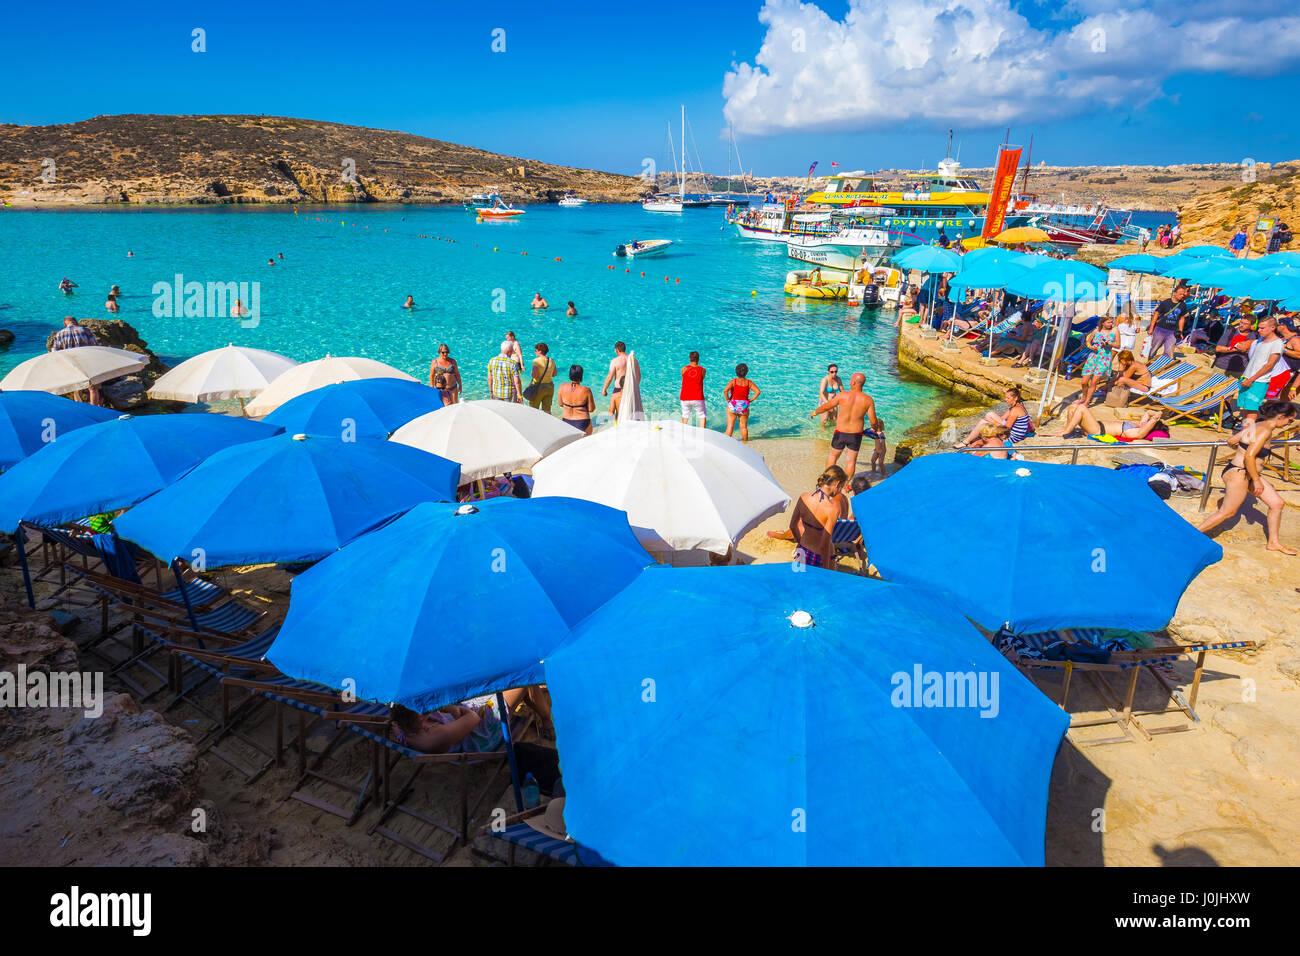 BLUE LAGOON, COMINO, MALTA - October 18, 2016: Tourists crowd to enjoy the clear turquoise water under umbrellas Stock Photo